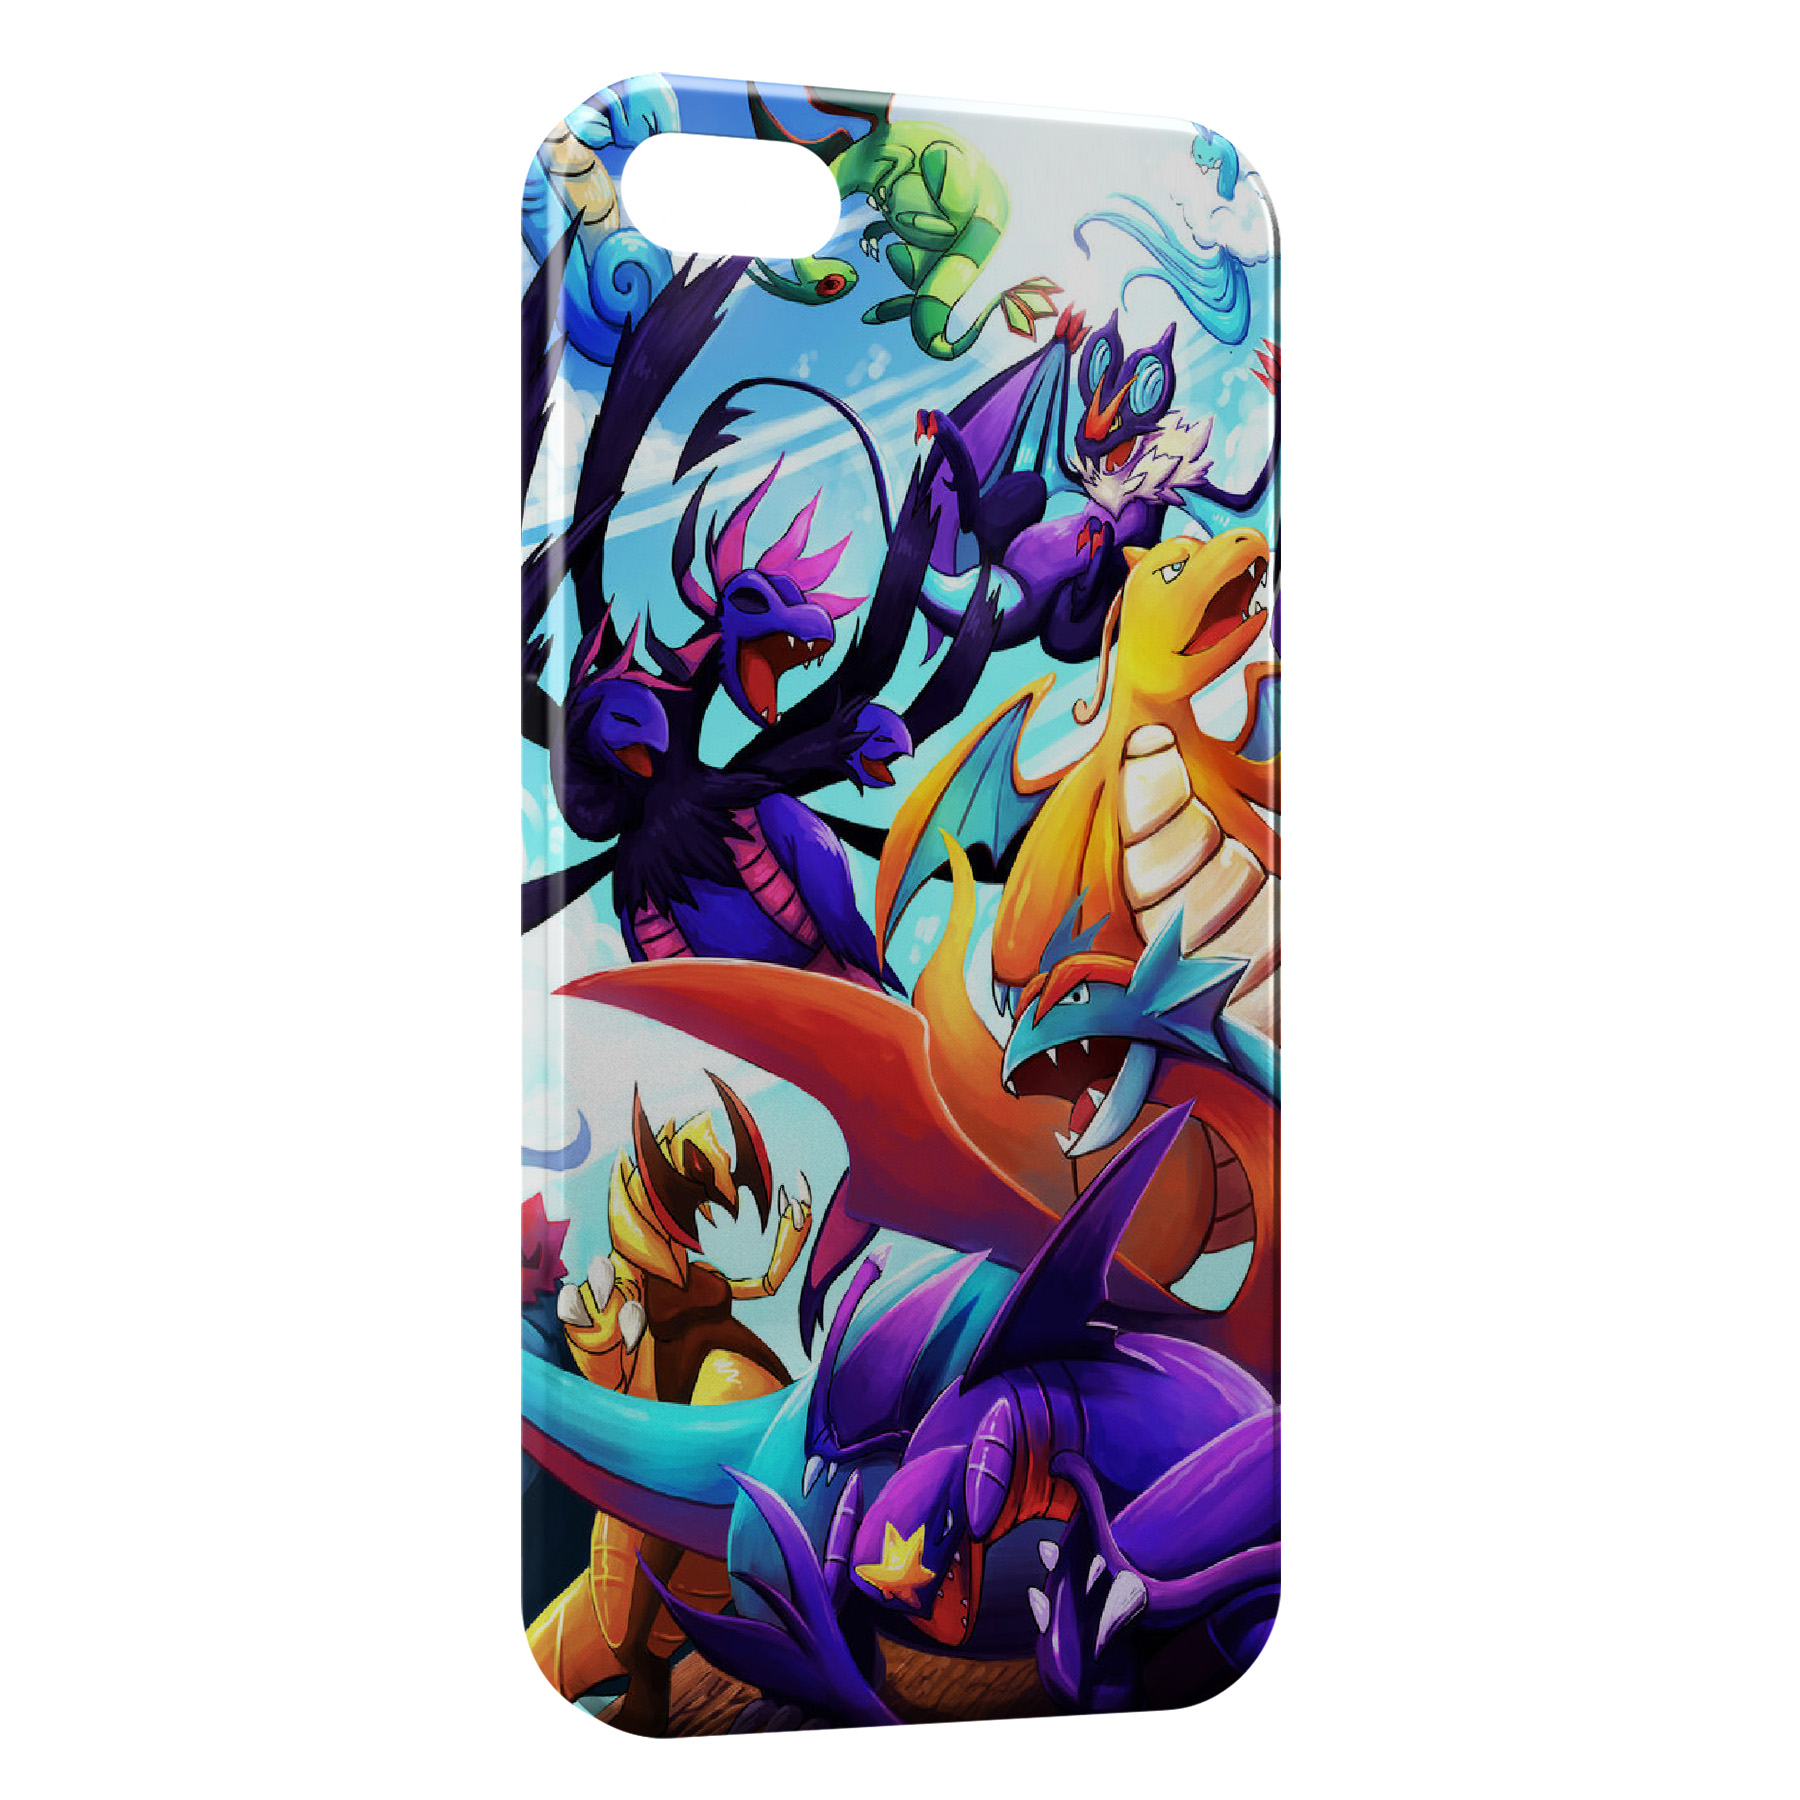 Coque Iphone 6 6s Dracolosse Dracaufeu Pokemon Graphic